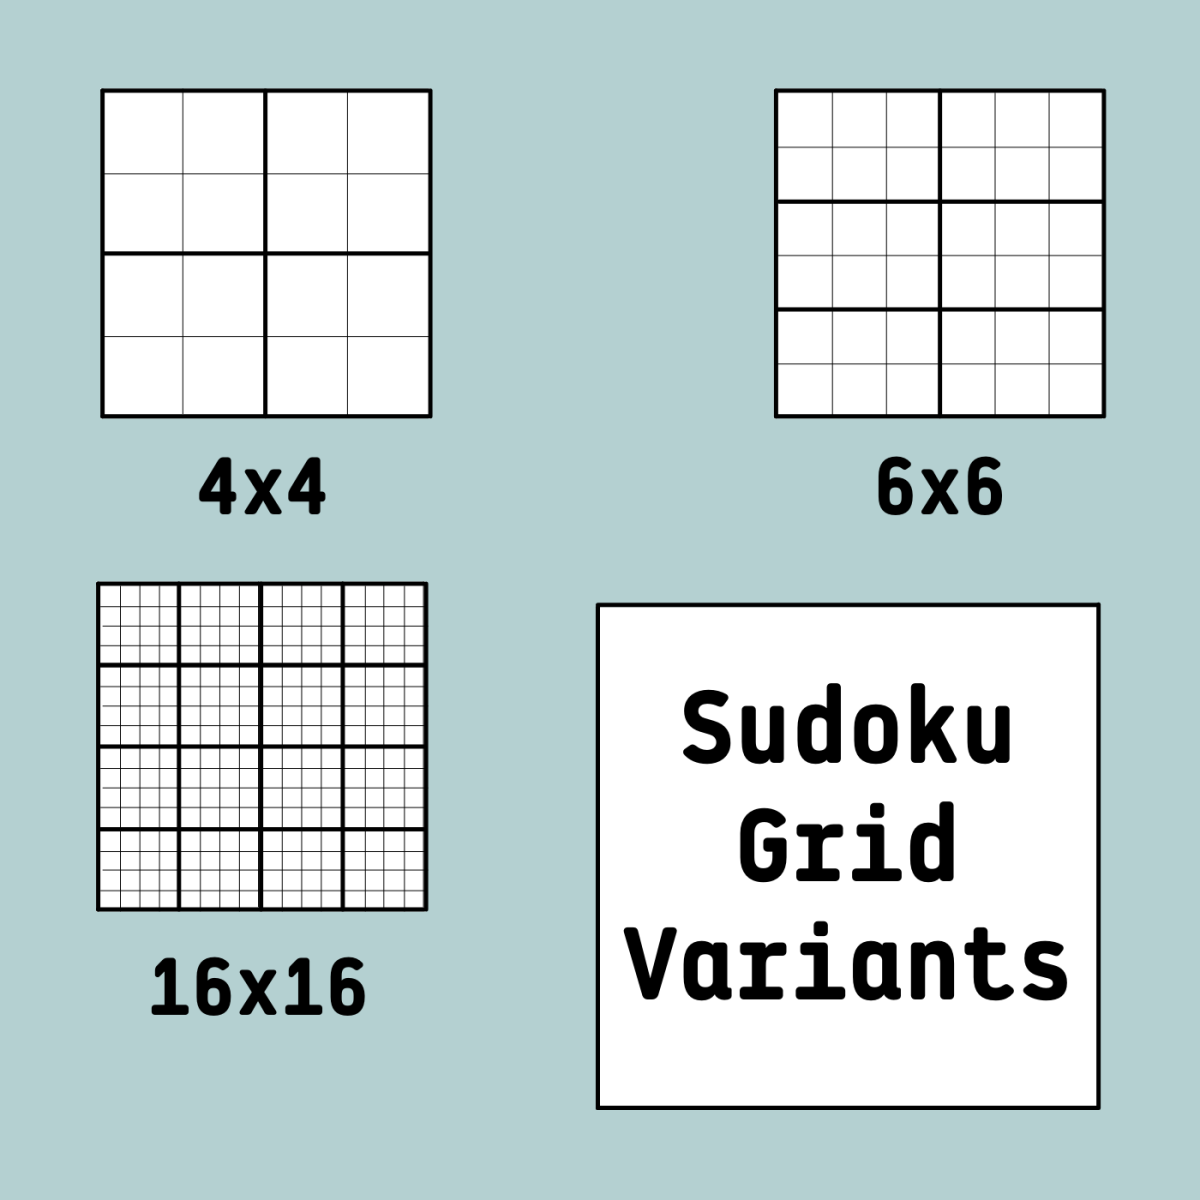 Here are a few of the grid variants you might find for sudoku puzzles.